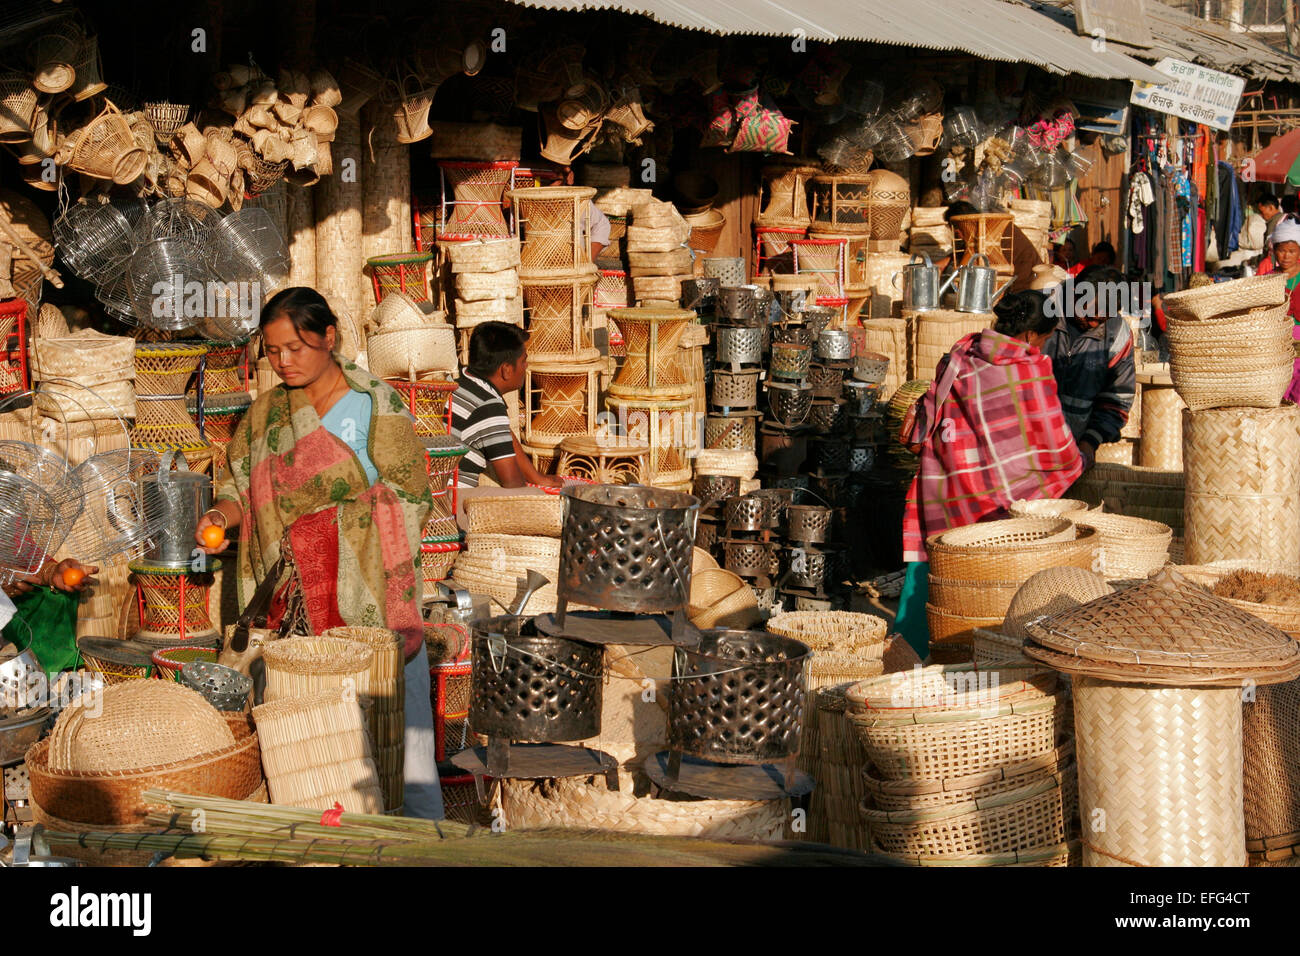 Outdoor market in Imphal, Manipur, India - Stock Image